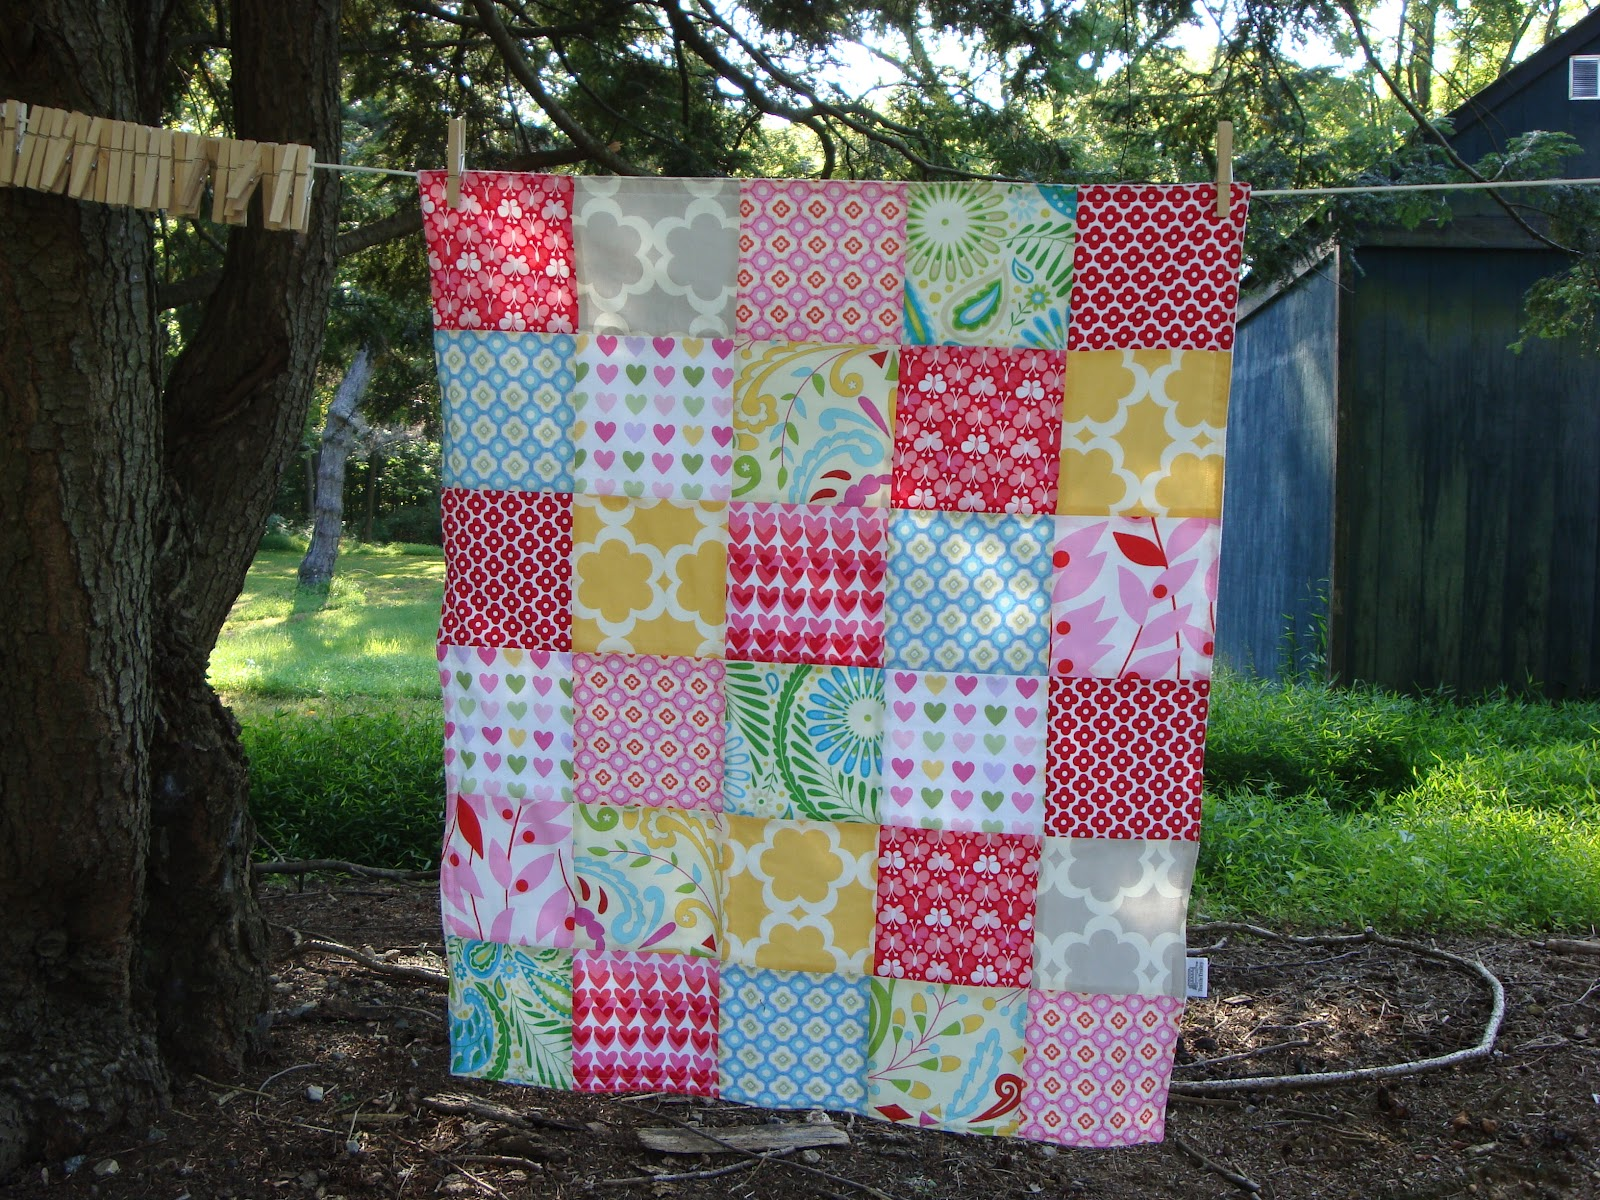 TEXTILE TROLLEY: How to make a patchwork baby blanket (no quilting ... : make patchwork quilt - Adamdwight.com